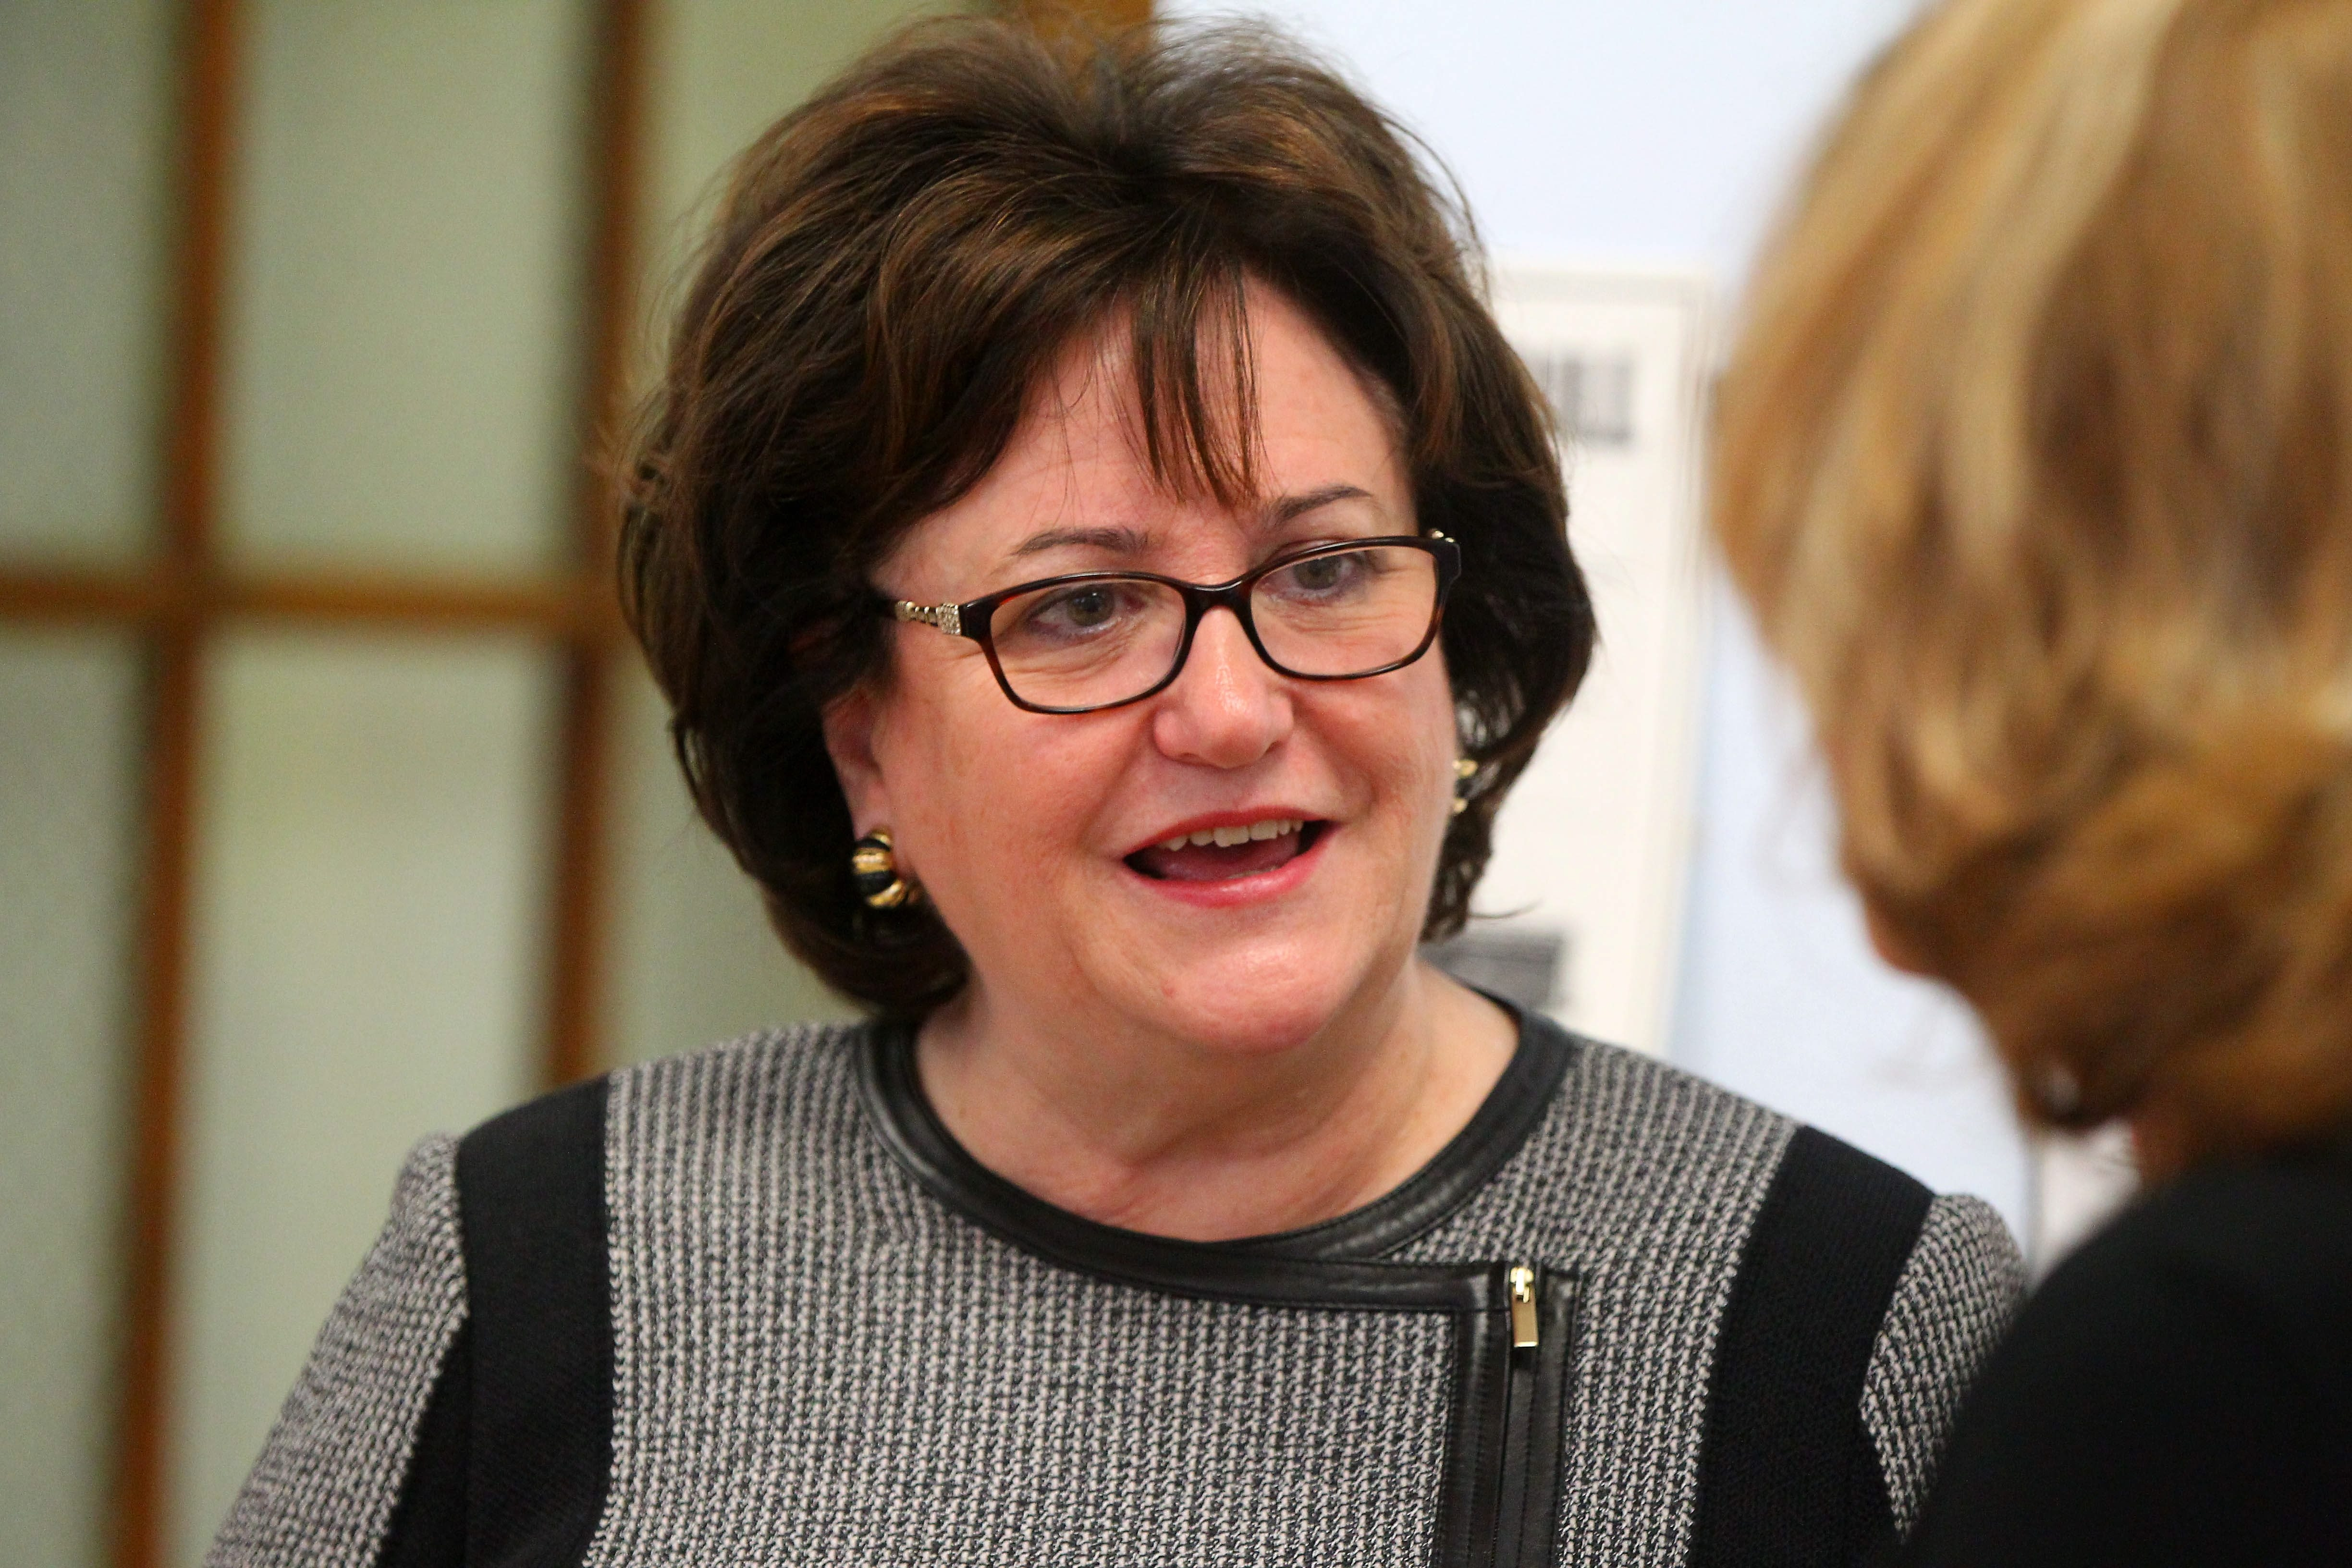 MaryEllen Elia, on day two of tour, visits pair of schools in Buffalo.